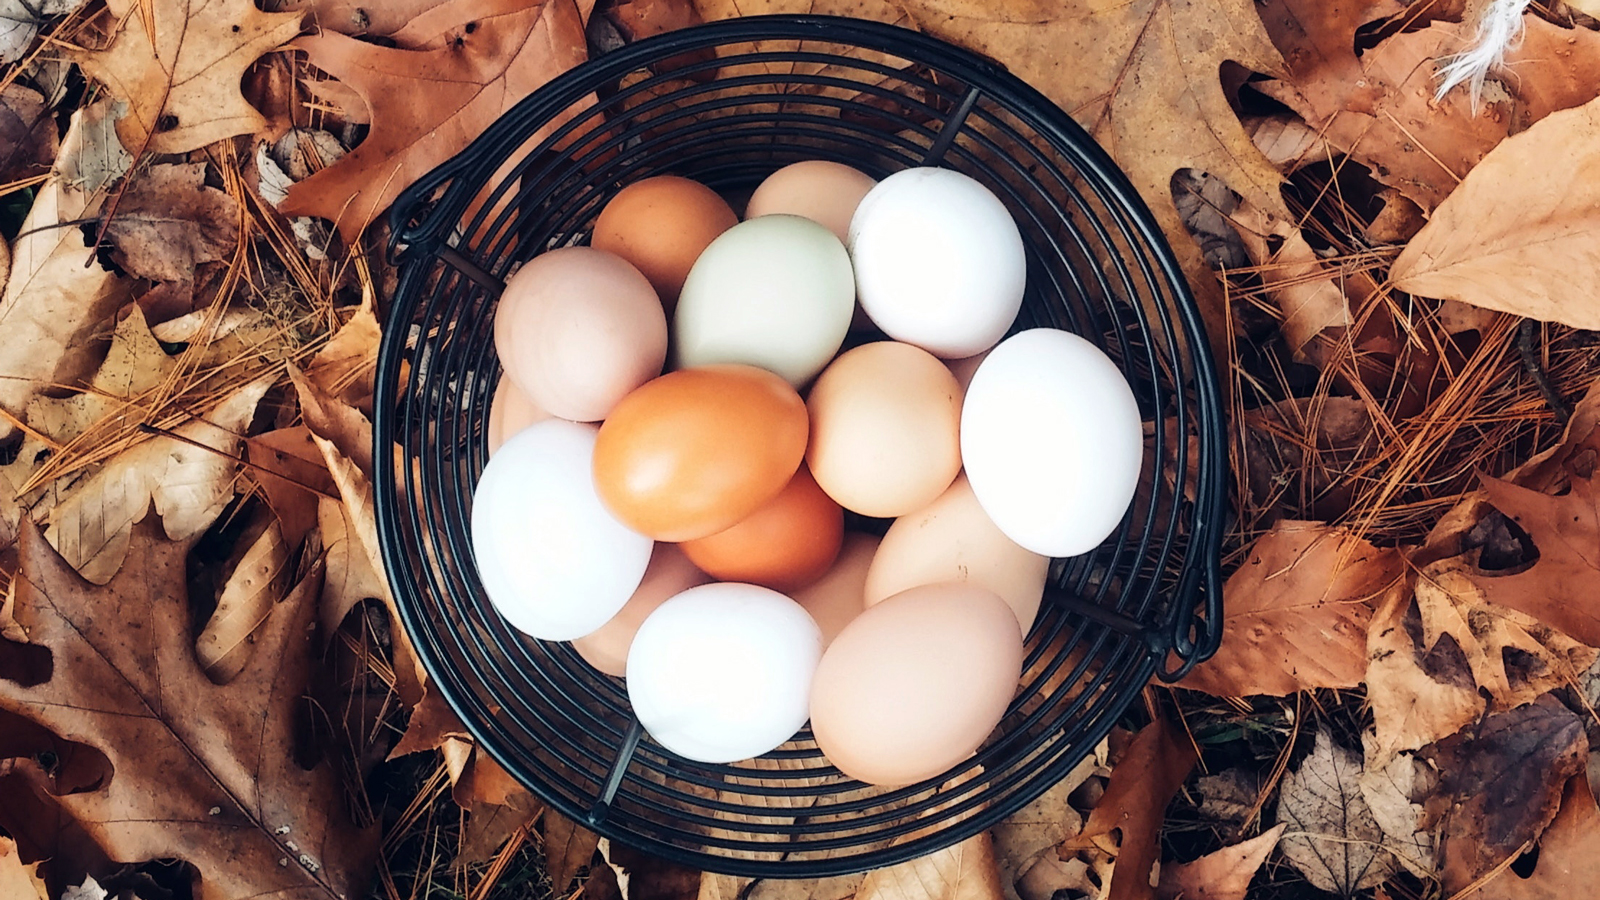 Eating just 3-4 eggs per week increases your risk of heart disease, death